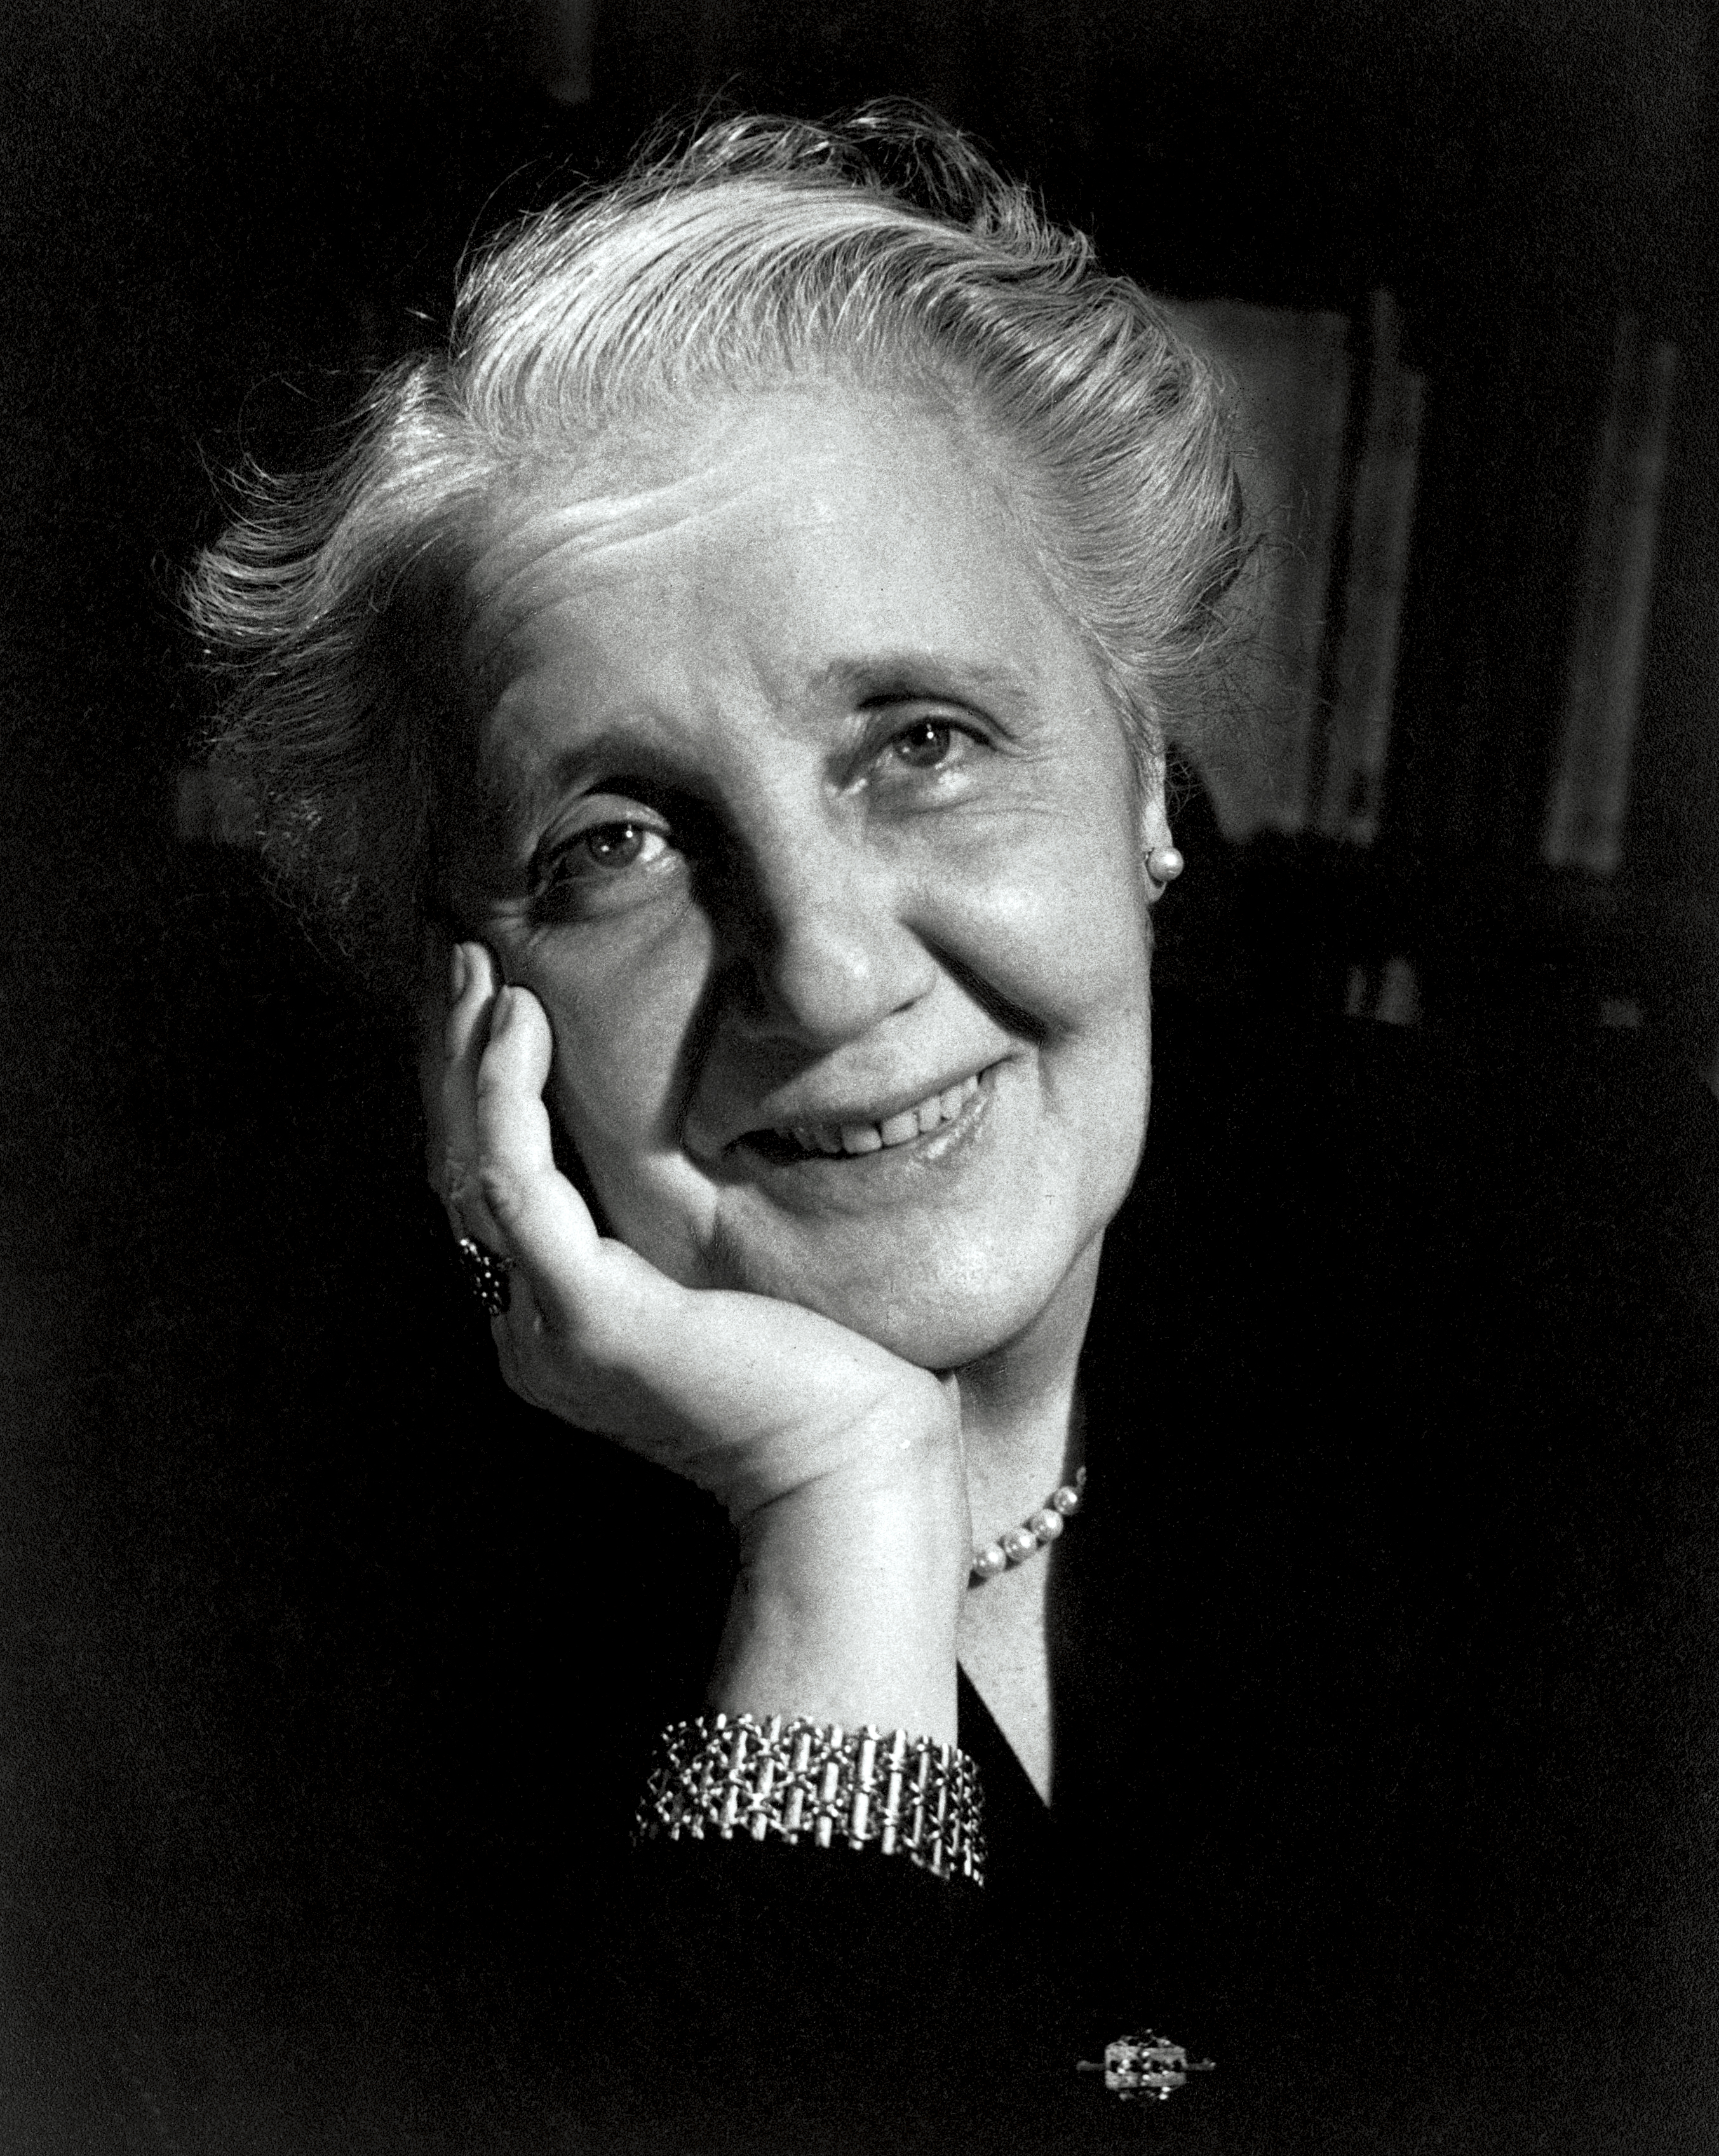 melanie klien and psychology Melanie klein melanie klein (march 30 1882 - september 22 1960) was an austrian-born british psychoanalyst, who devised therapeutic techniques for children with great impact on contemporary methods of child care and rearing.